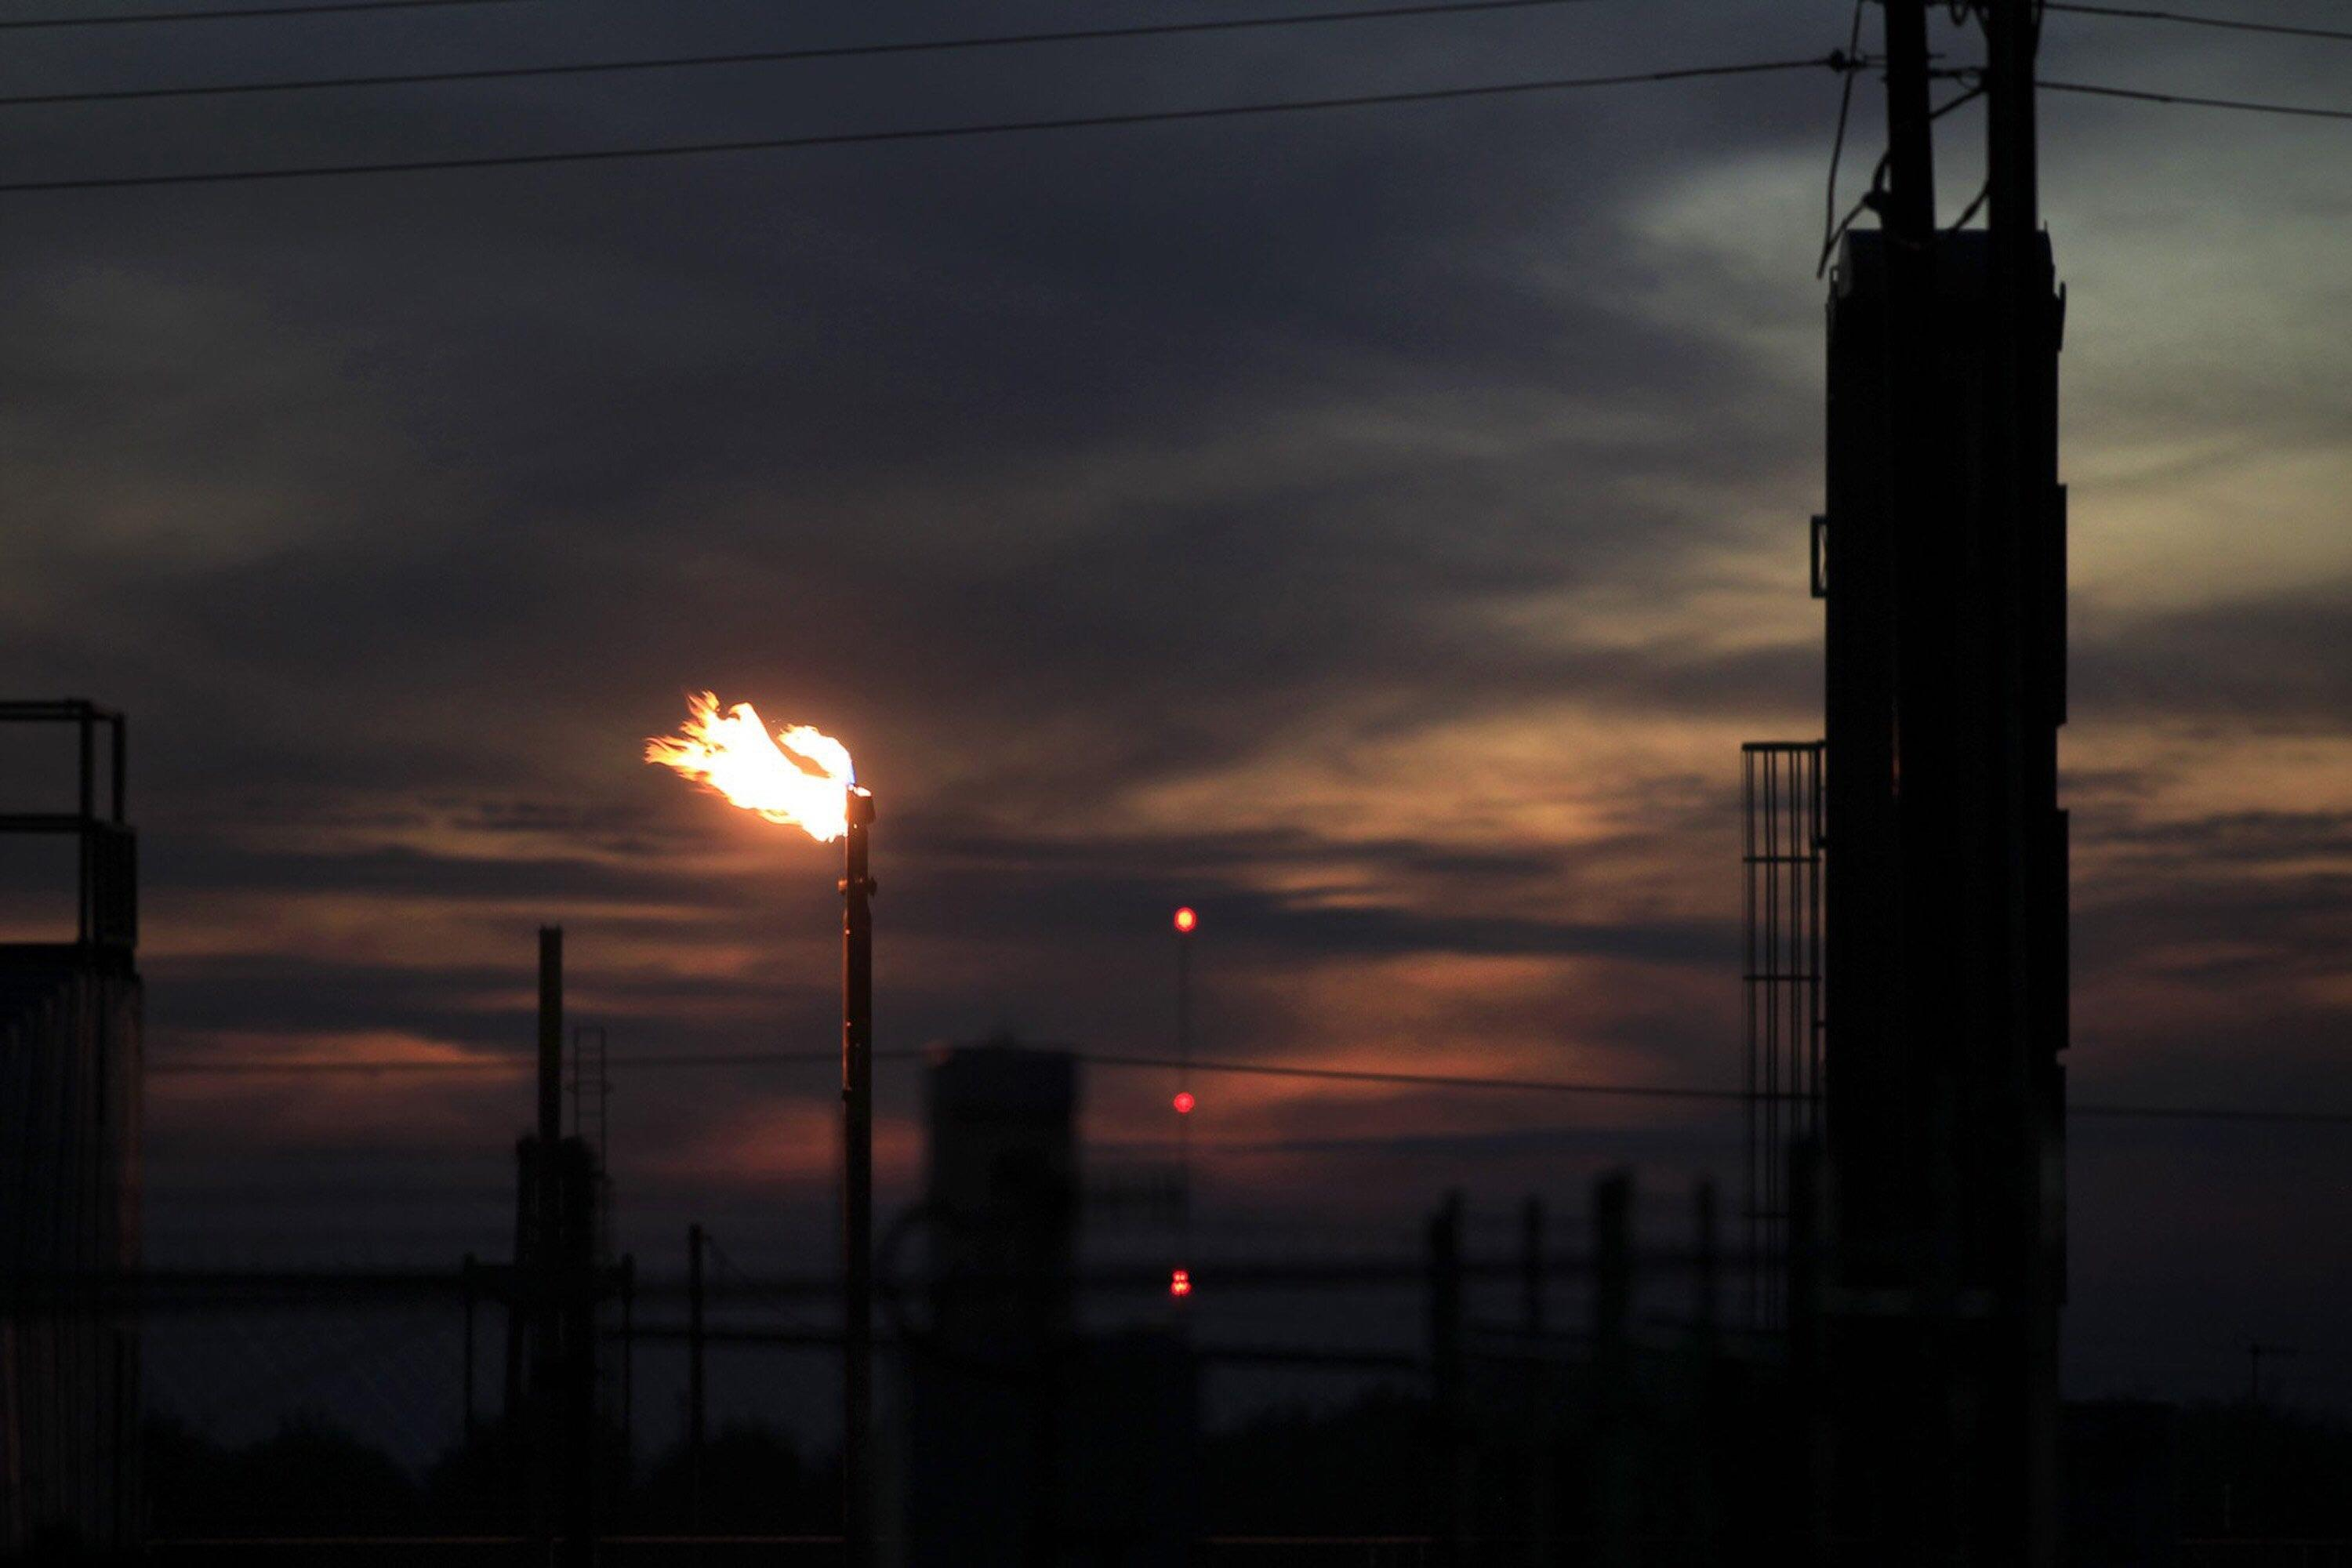 Study raises concerns about toxic oil and gas emissions in California air